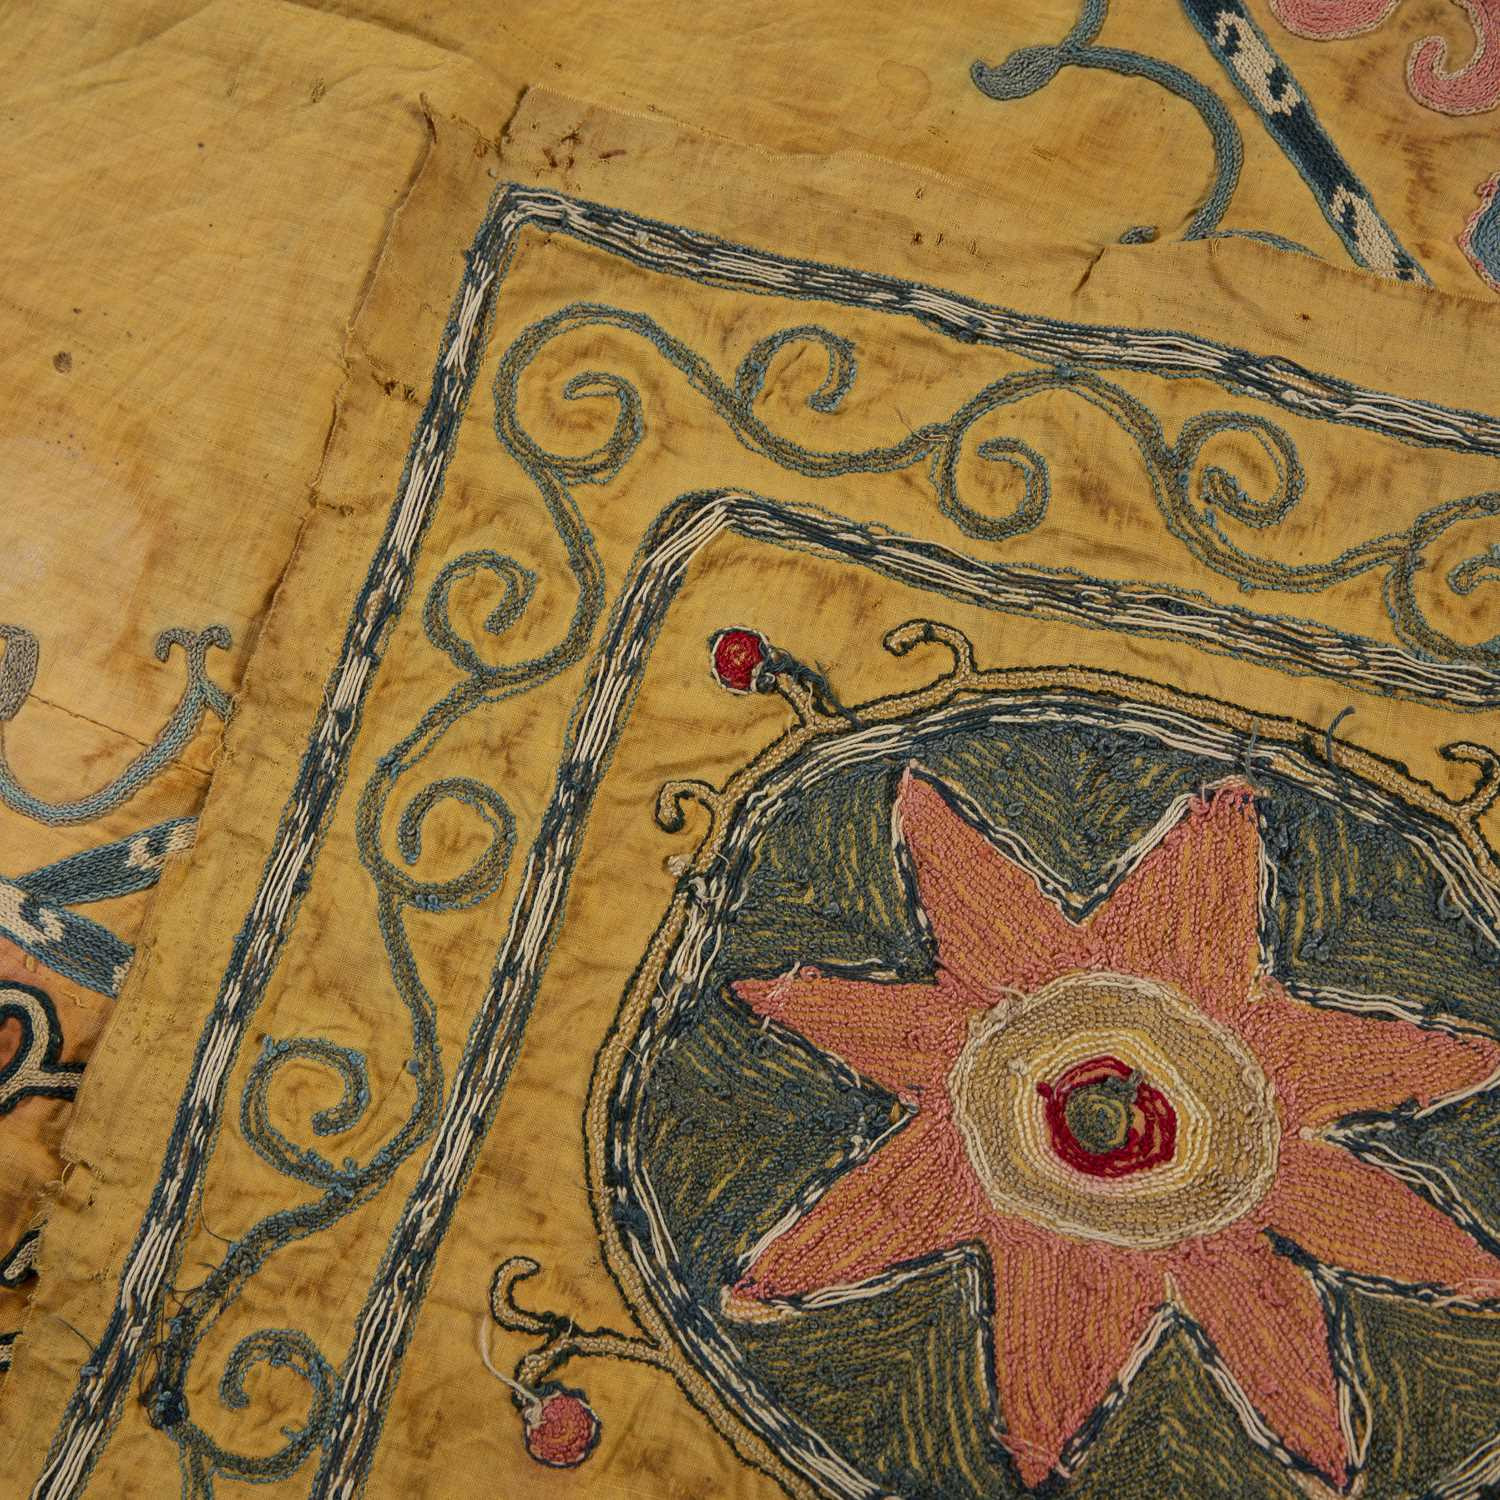 Part of an Uzbek Susani with a colourful star and scrolling design on a yellow ground, 142 x 90cm - Image 2 of 2